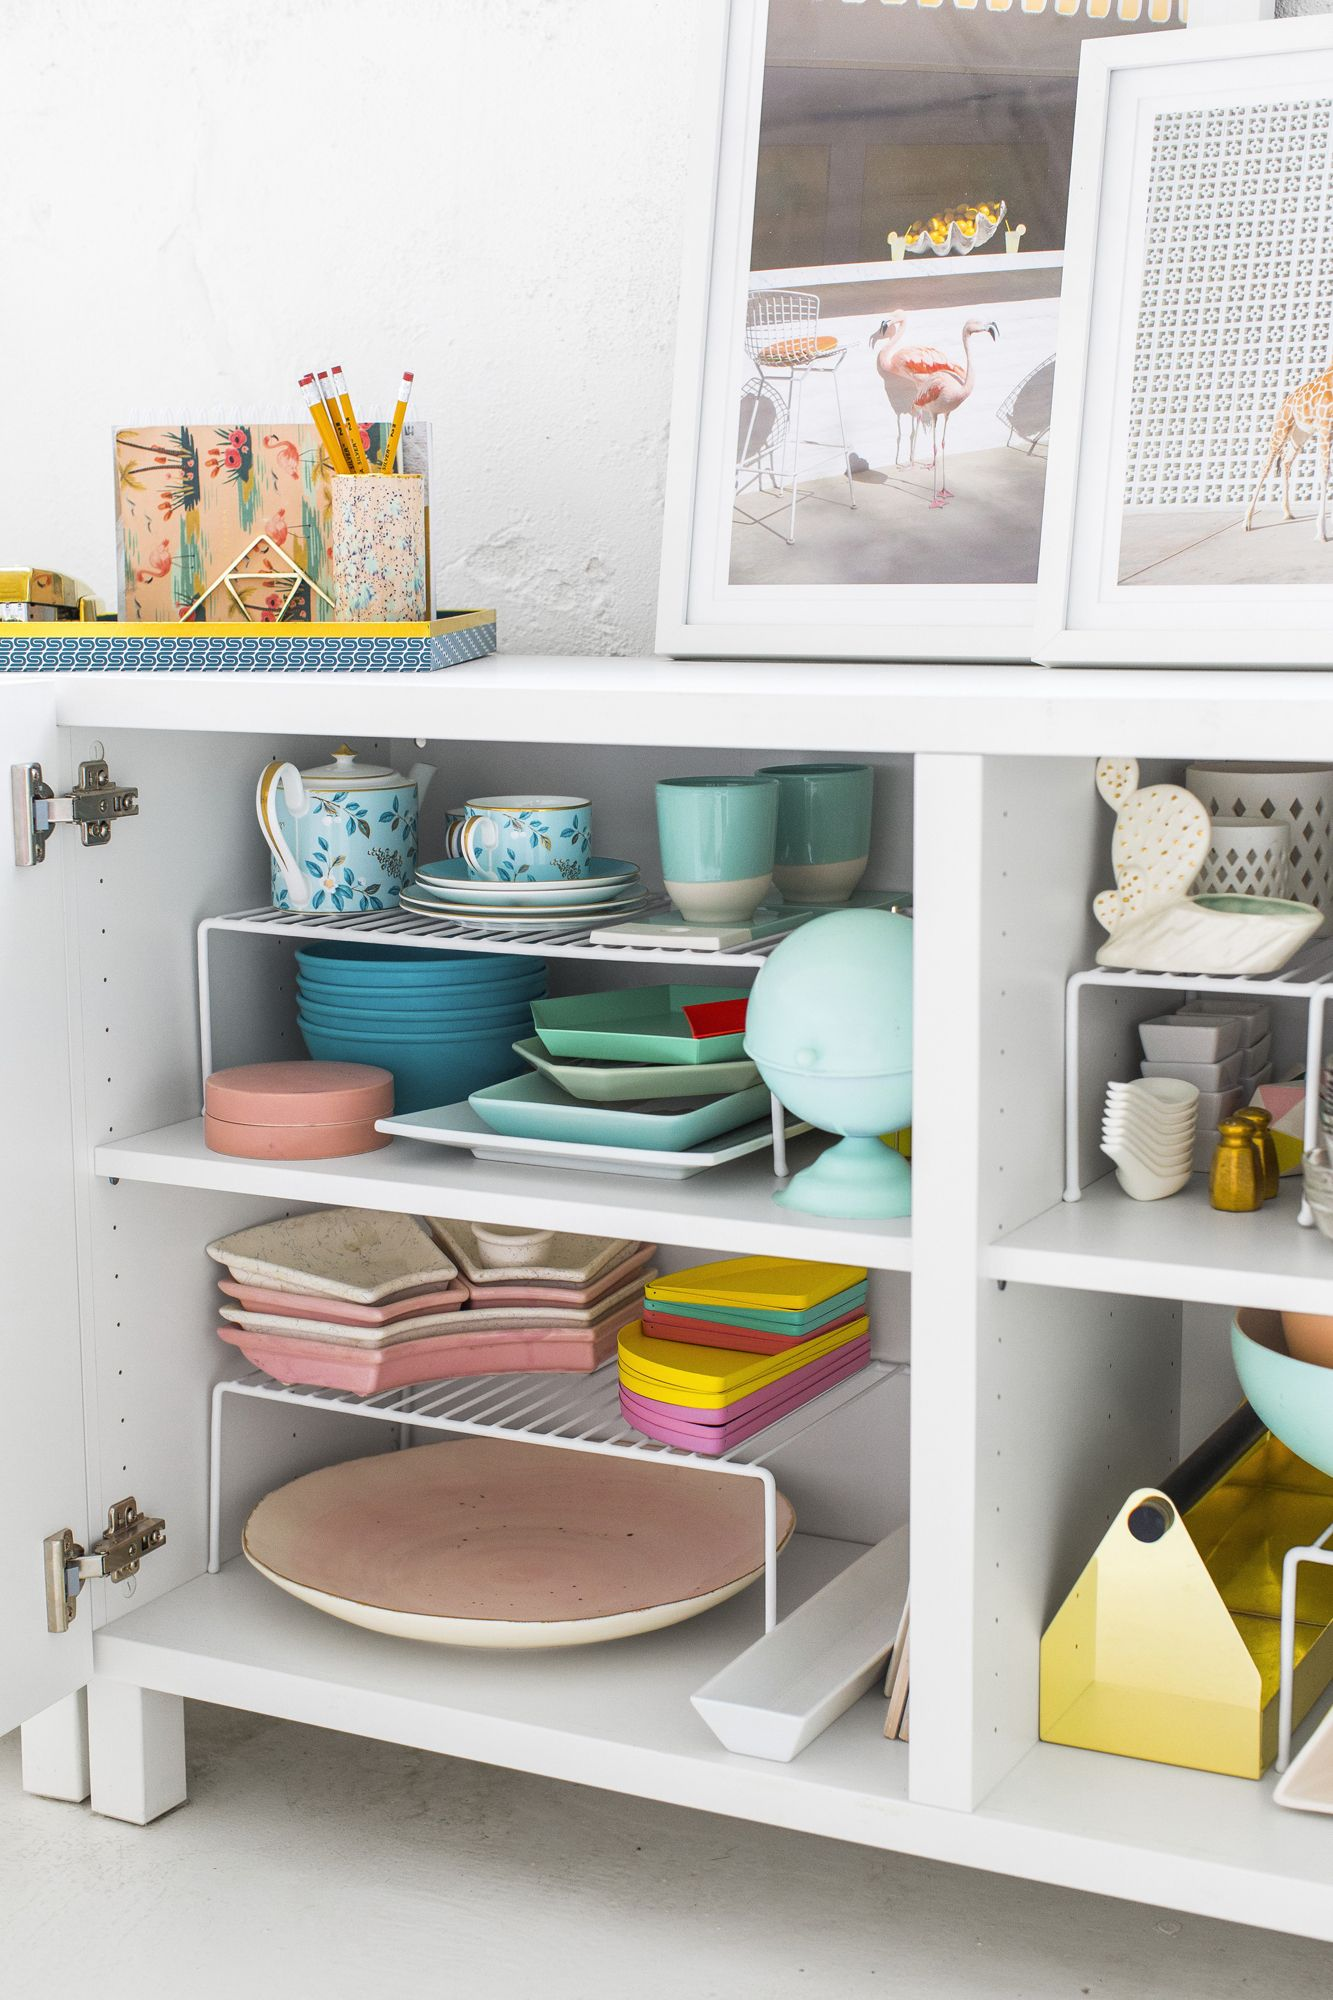 21 kitchen organization ideas kitchen organizing tips and tricks rh goodhousekeeping com storage solutions for tiny kitchens